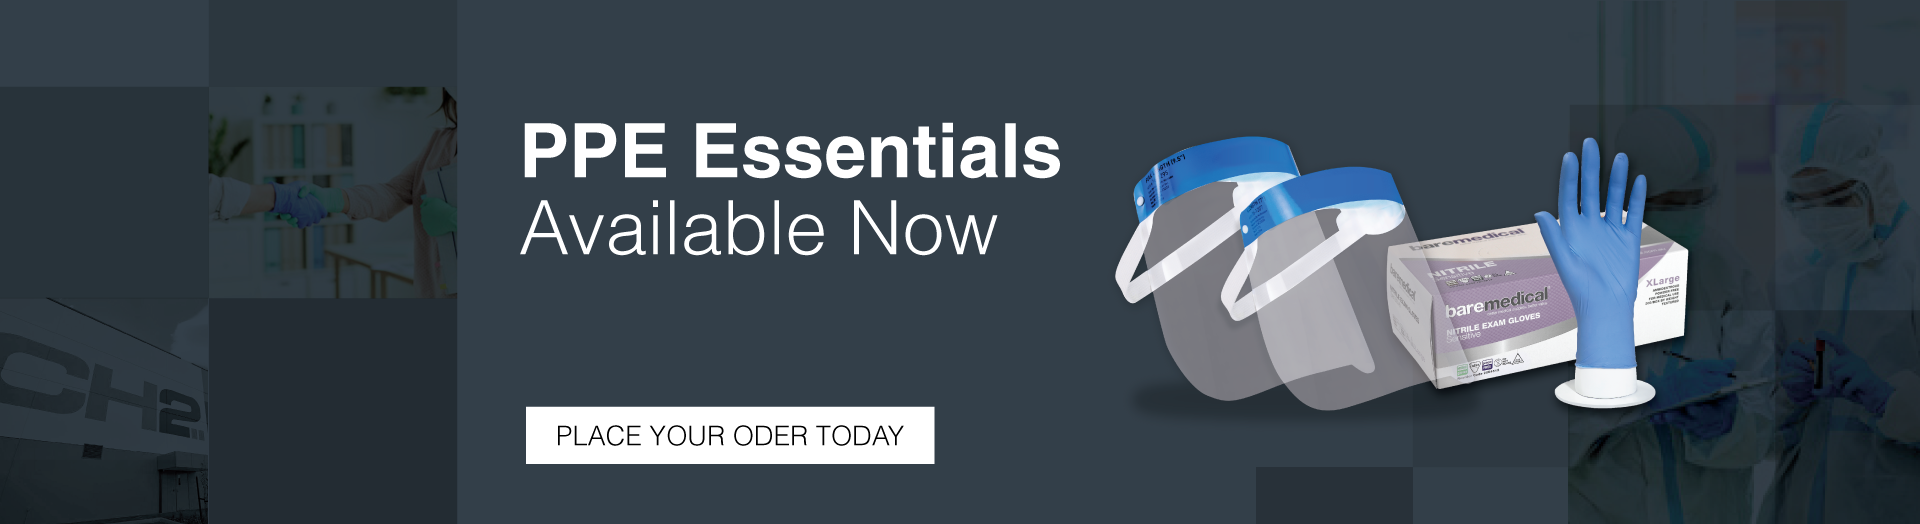 PPE Essentials Available Now